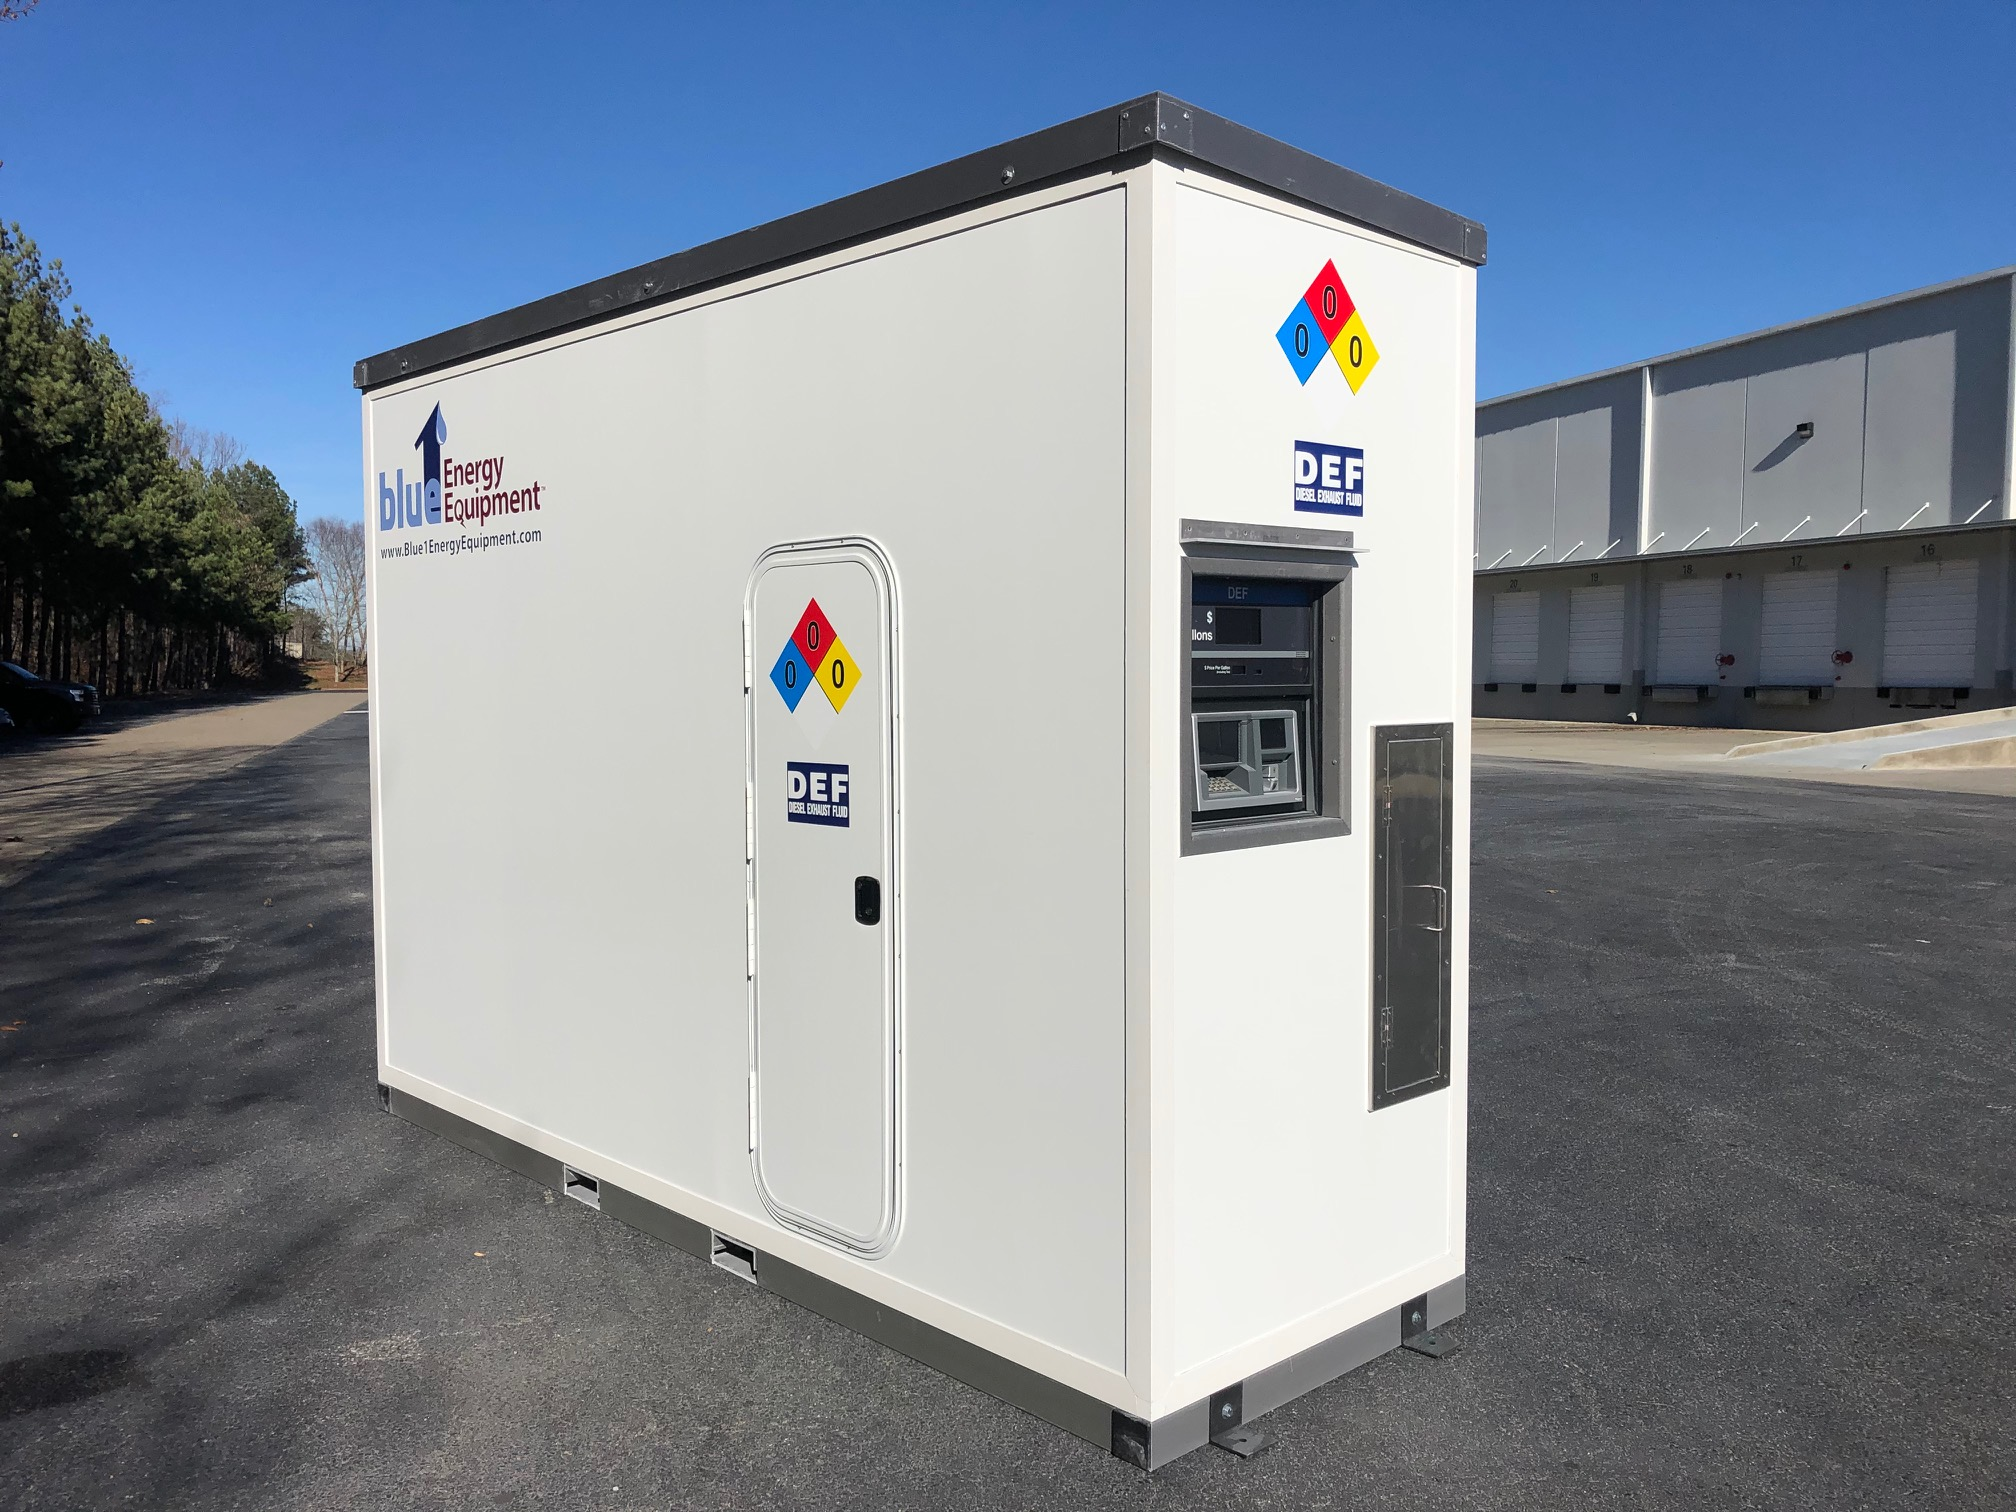 https://0901.nccdn.net/4_2/000/000/050/773/blue1-3rd-party-retial-platinum.jpg